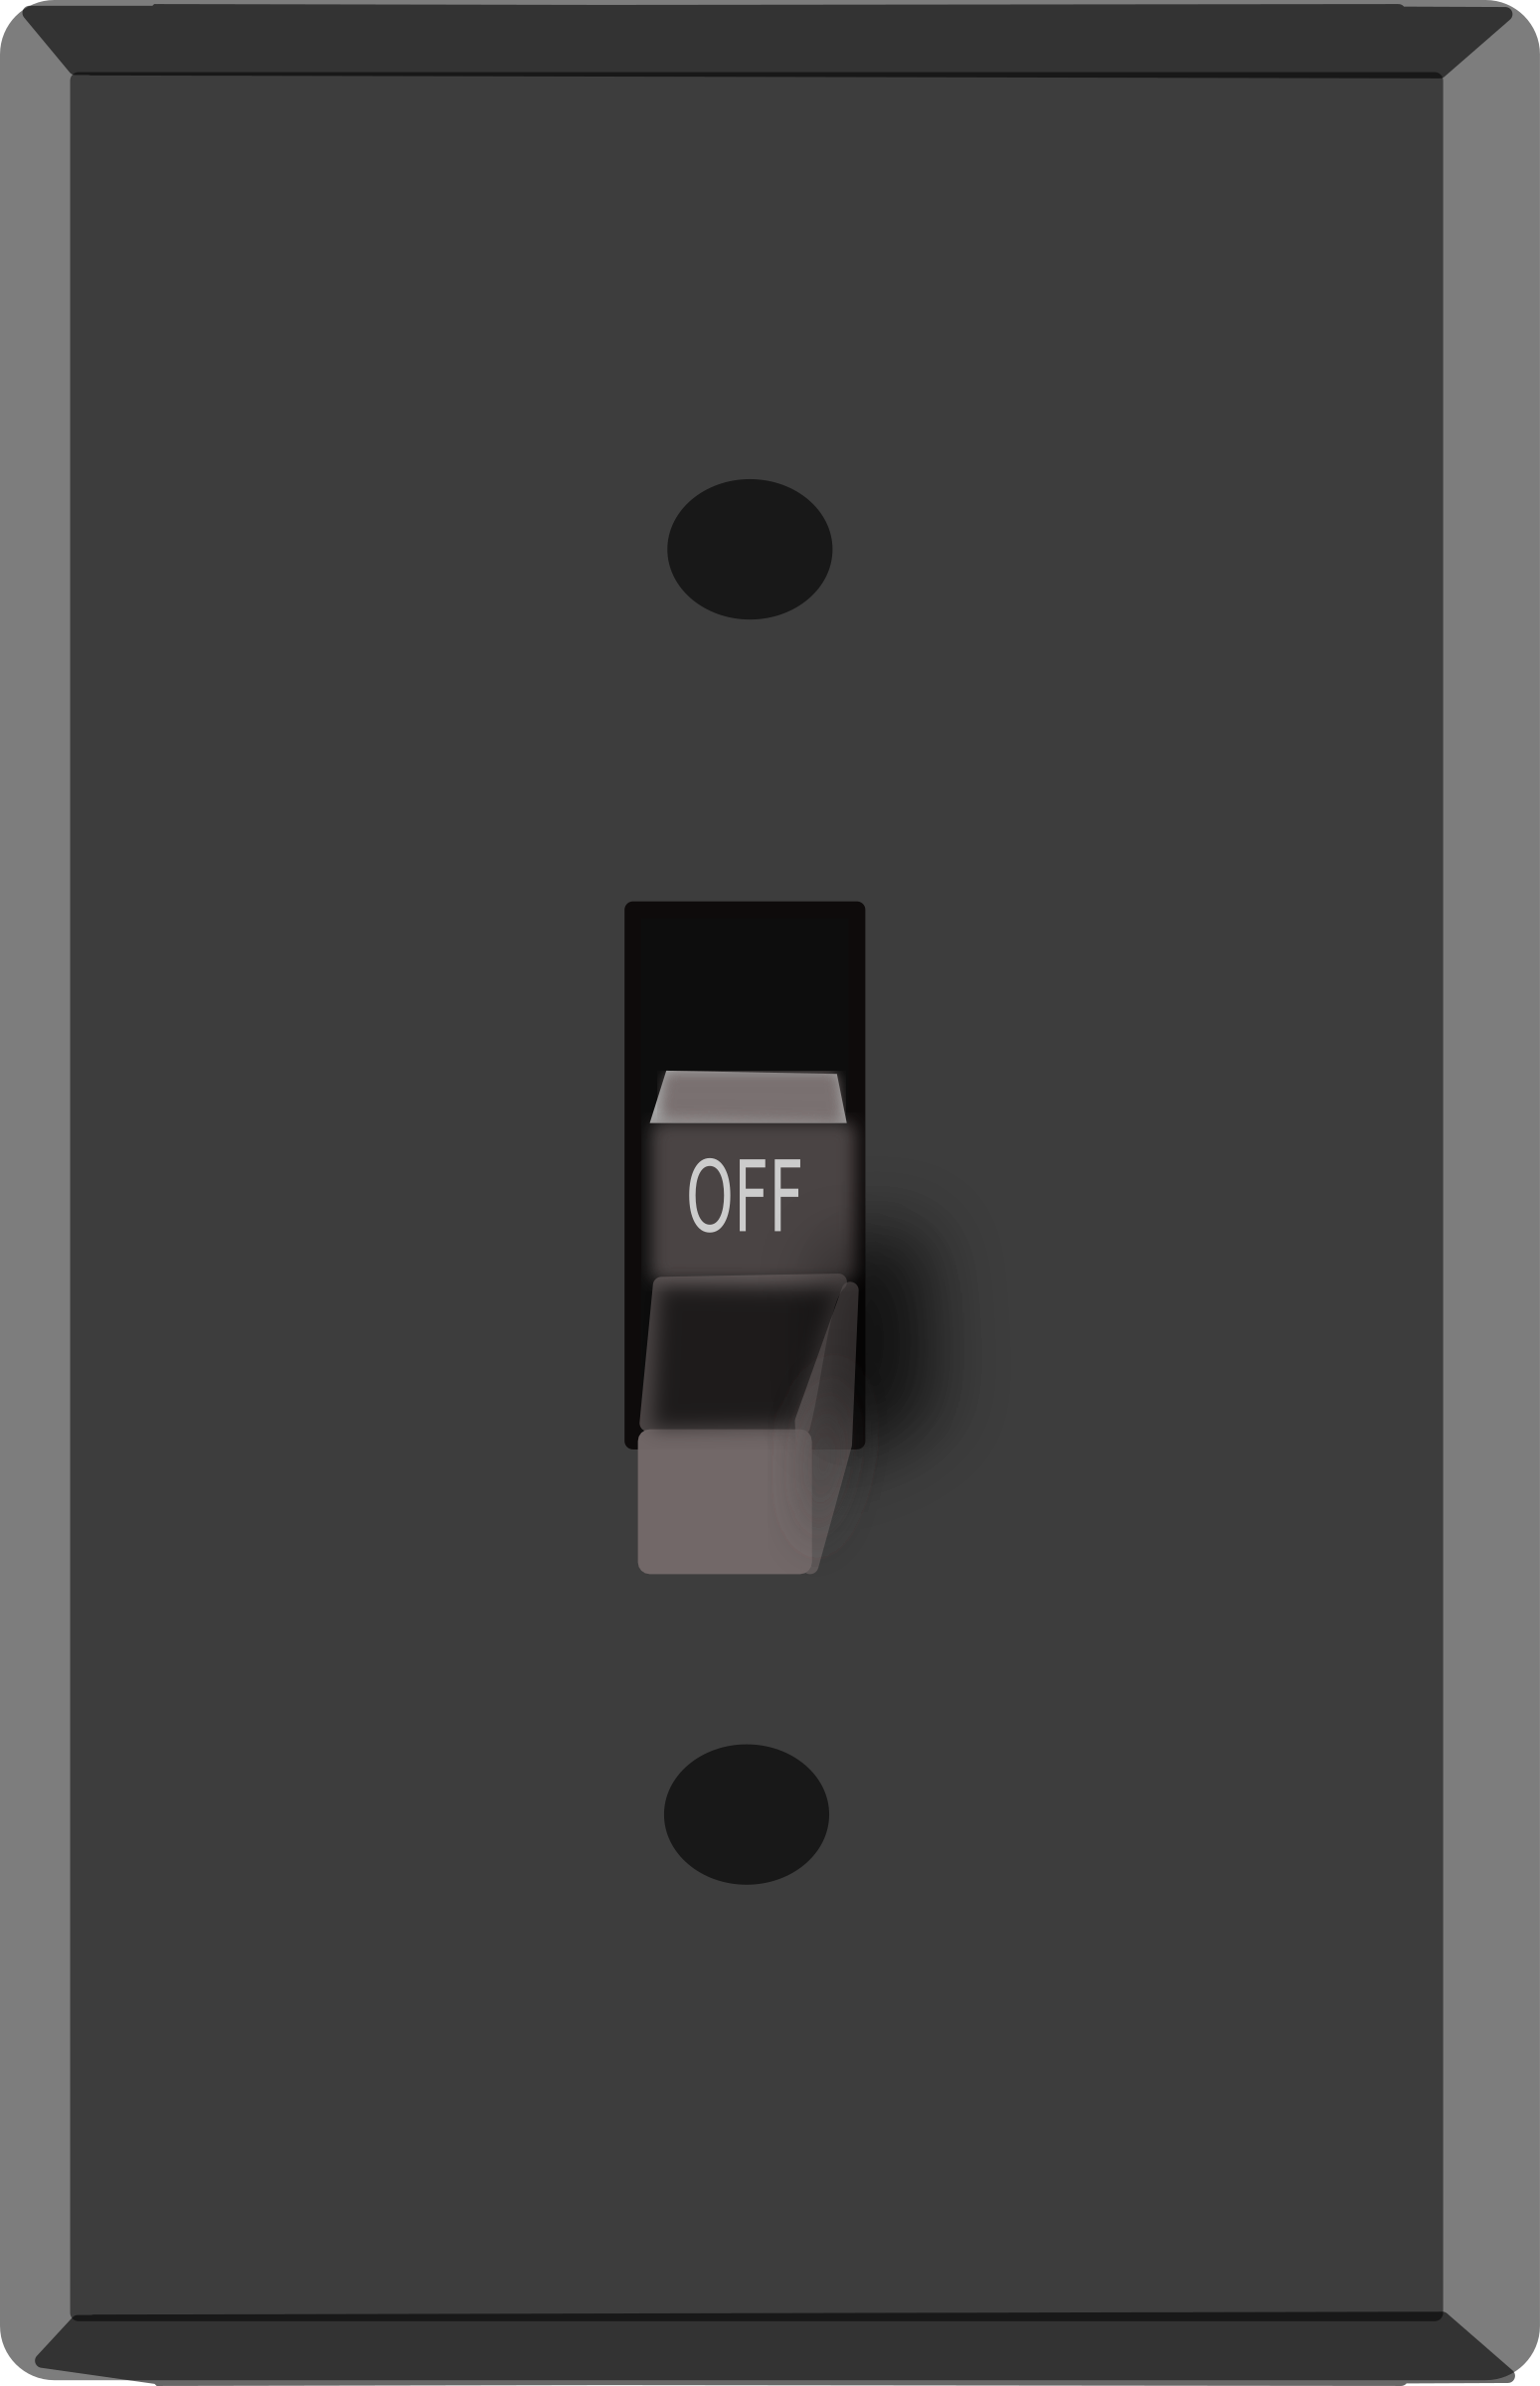 Drawing off switch. Clipart light big image